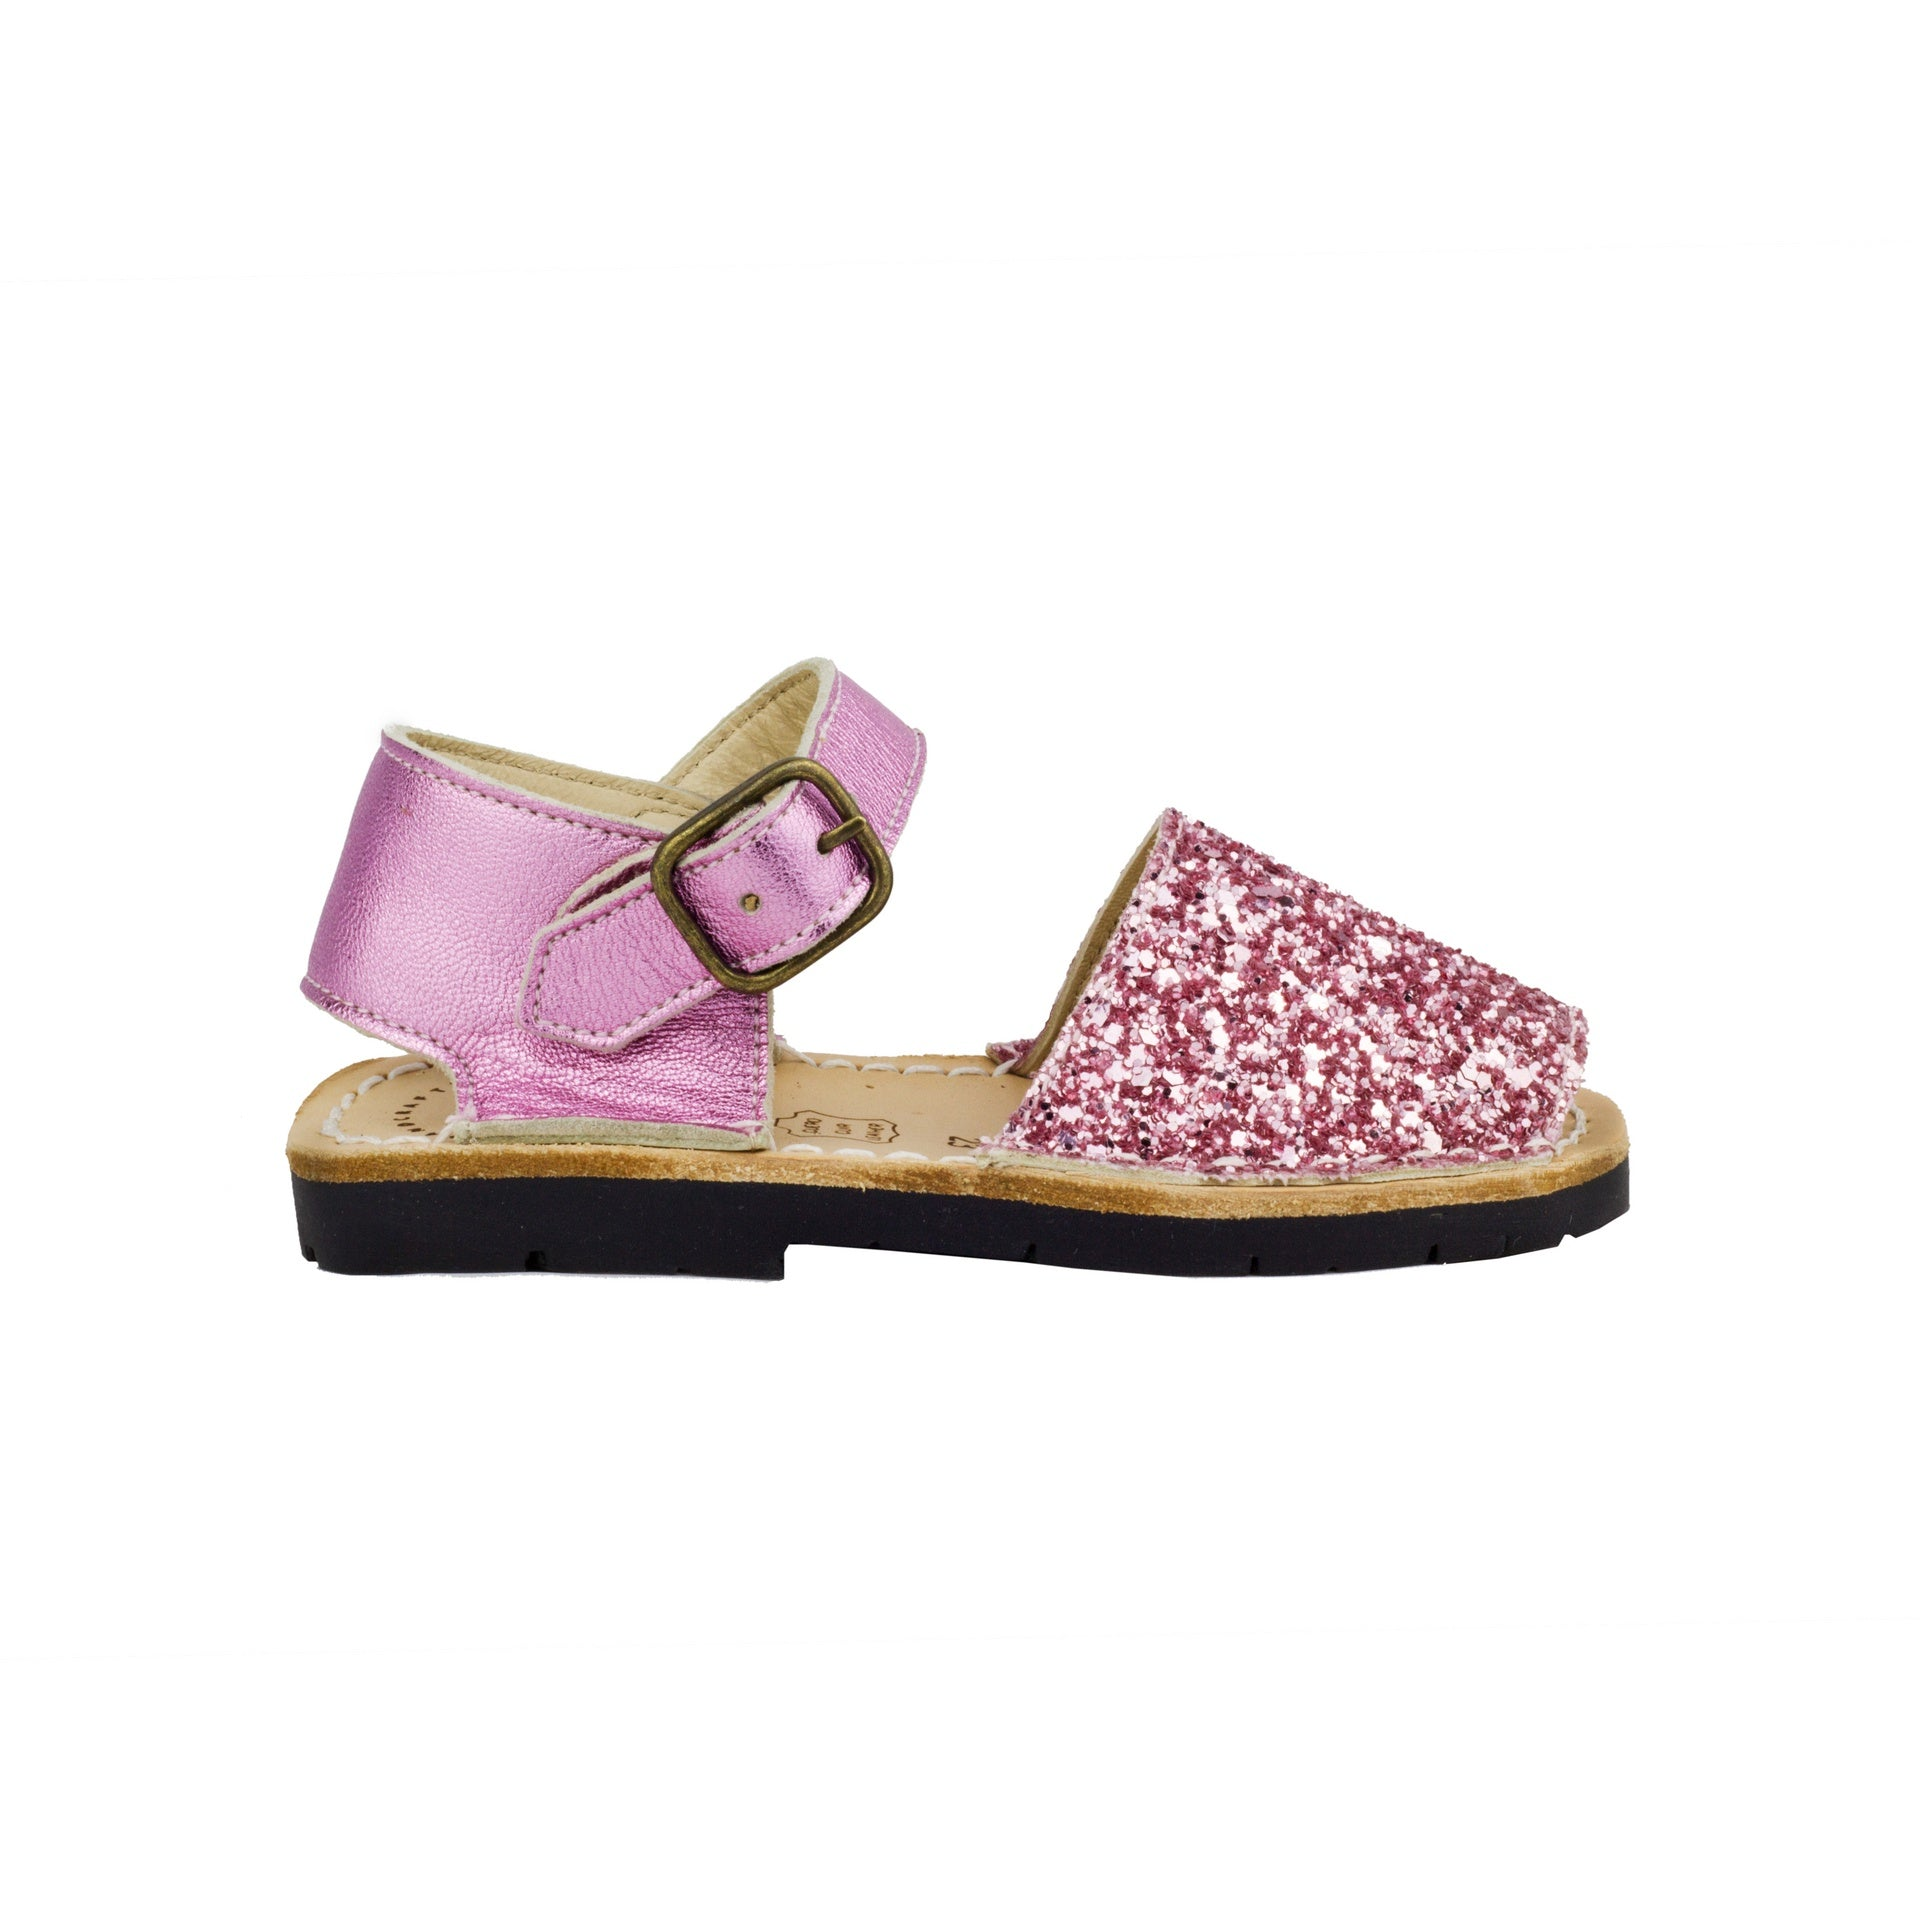 Kid's Candy Glitter Mibo Avarca Sandals with Buckle Strap